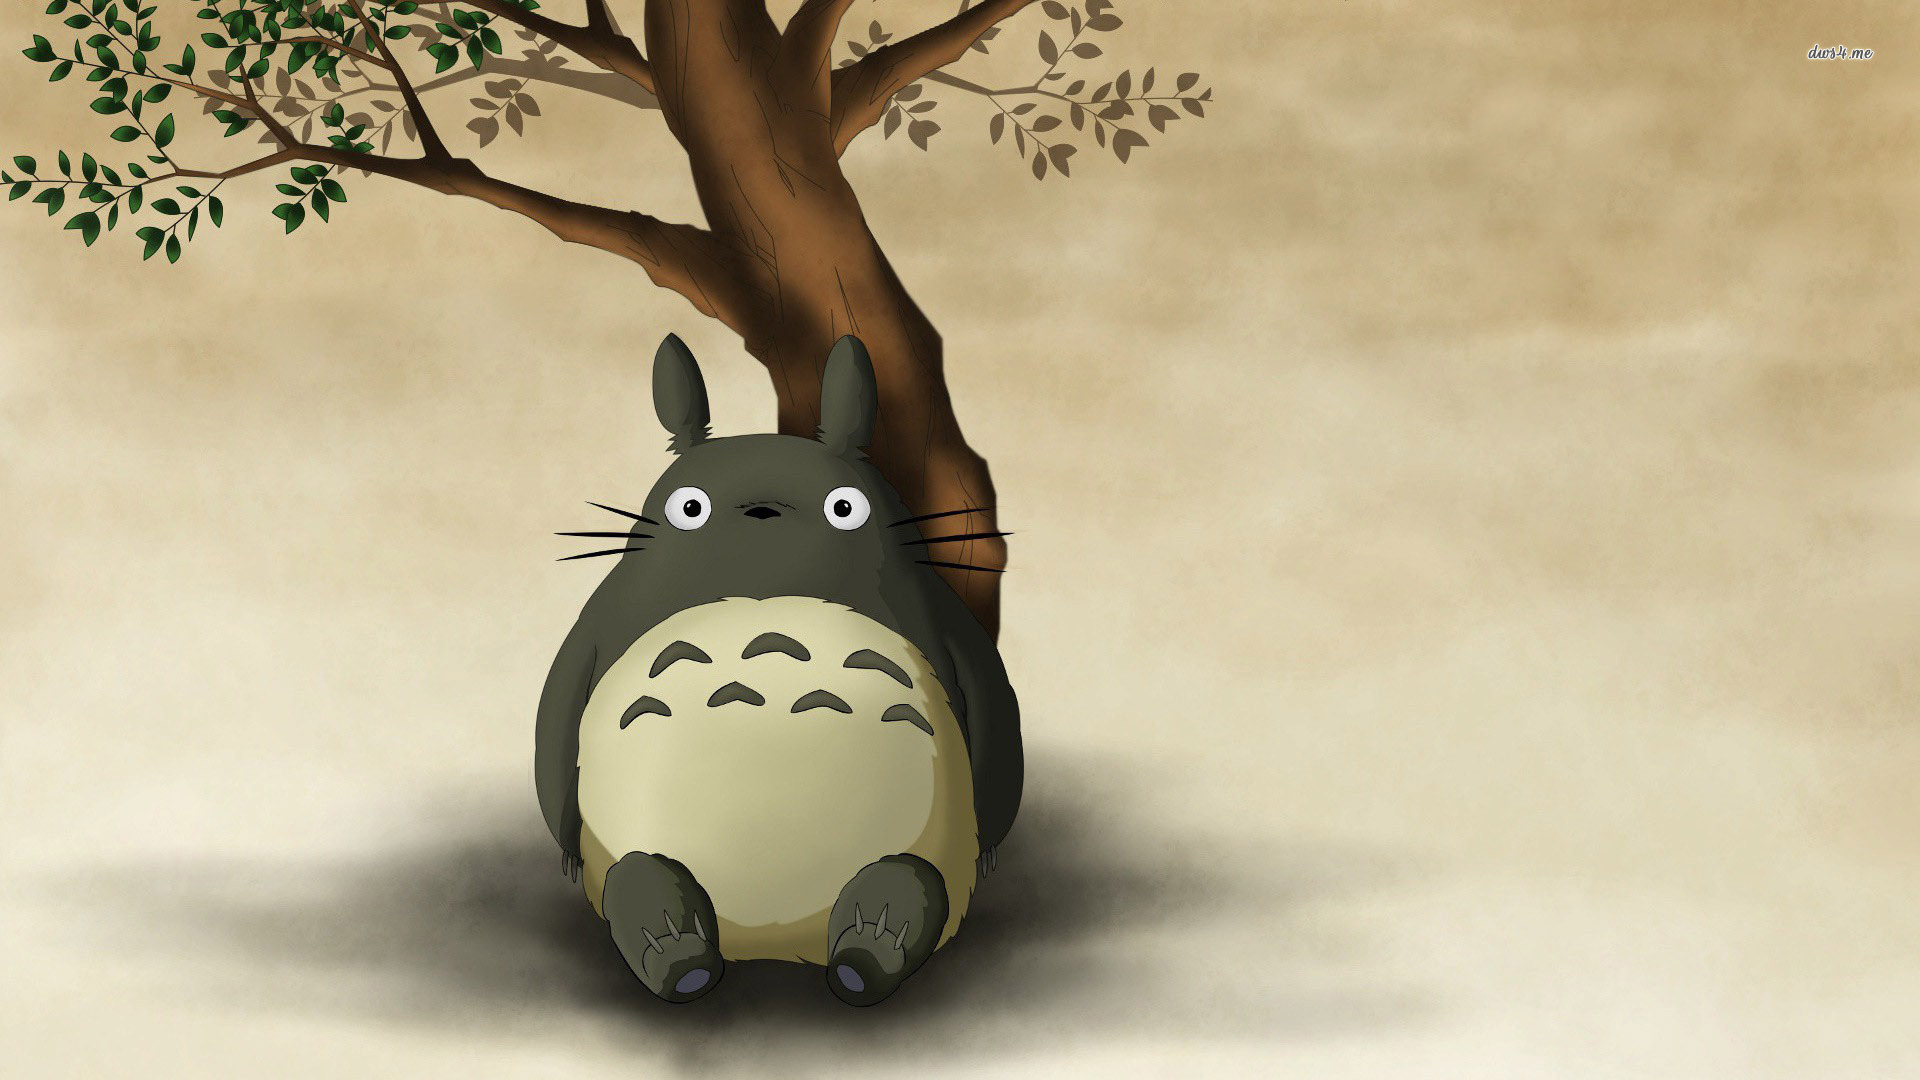 My Neighbor Totoro Full HD Bakgrund And